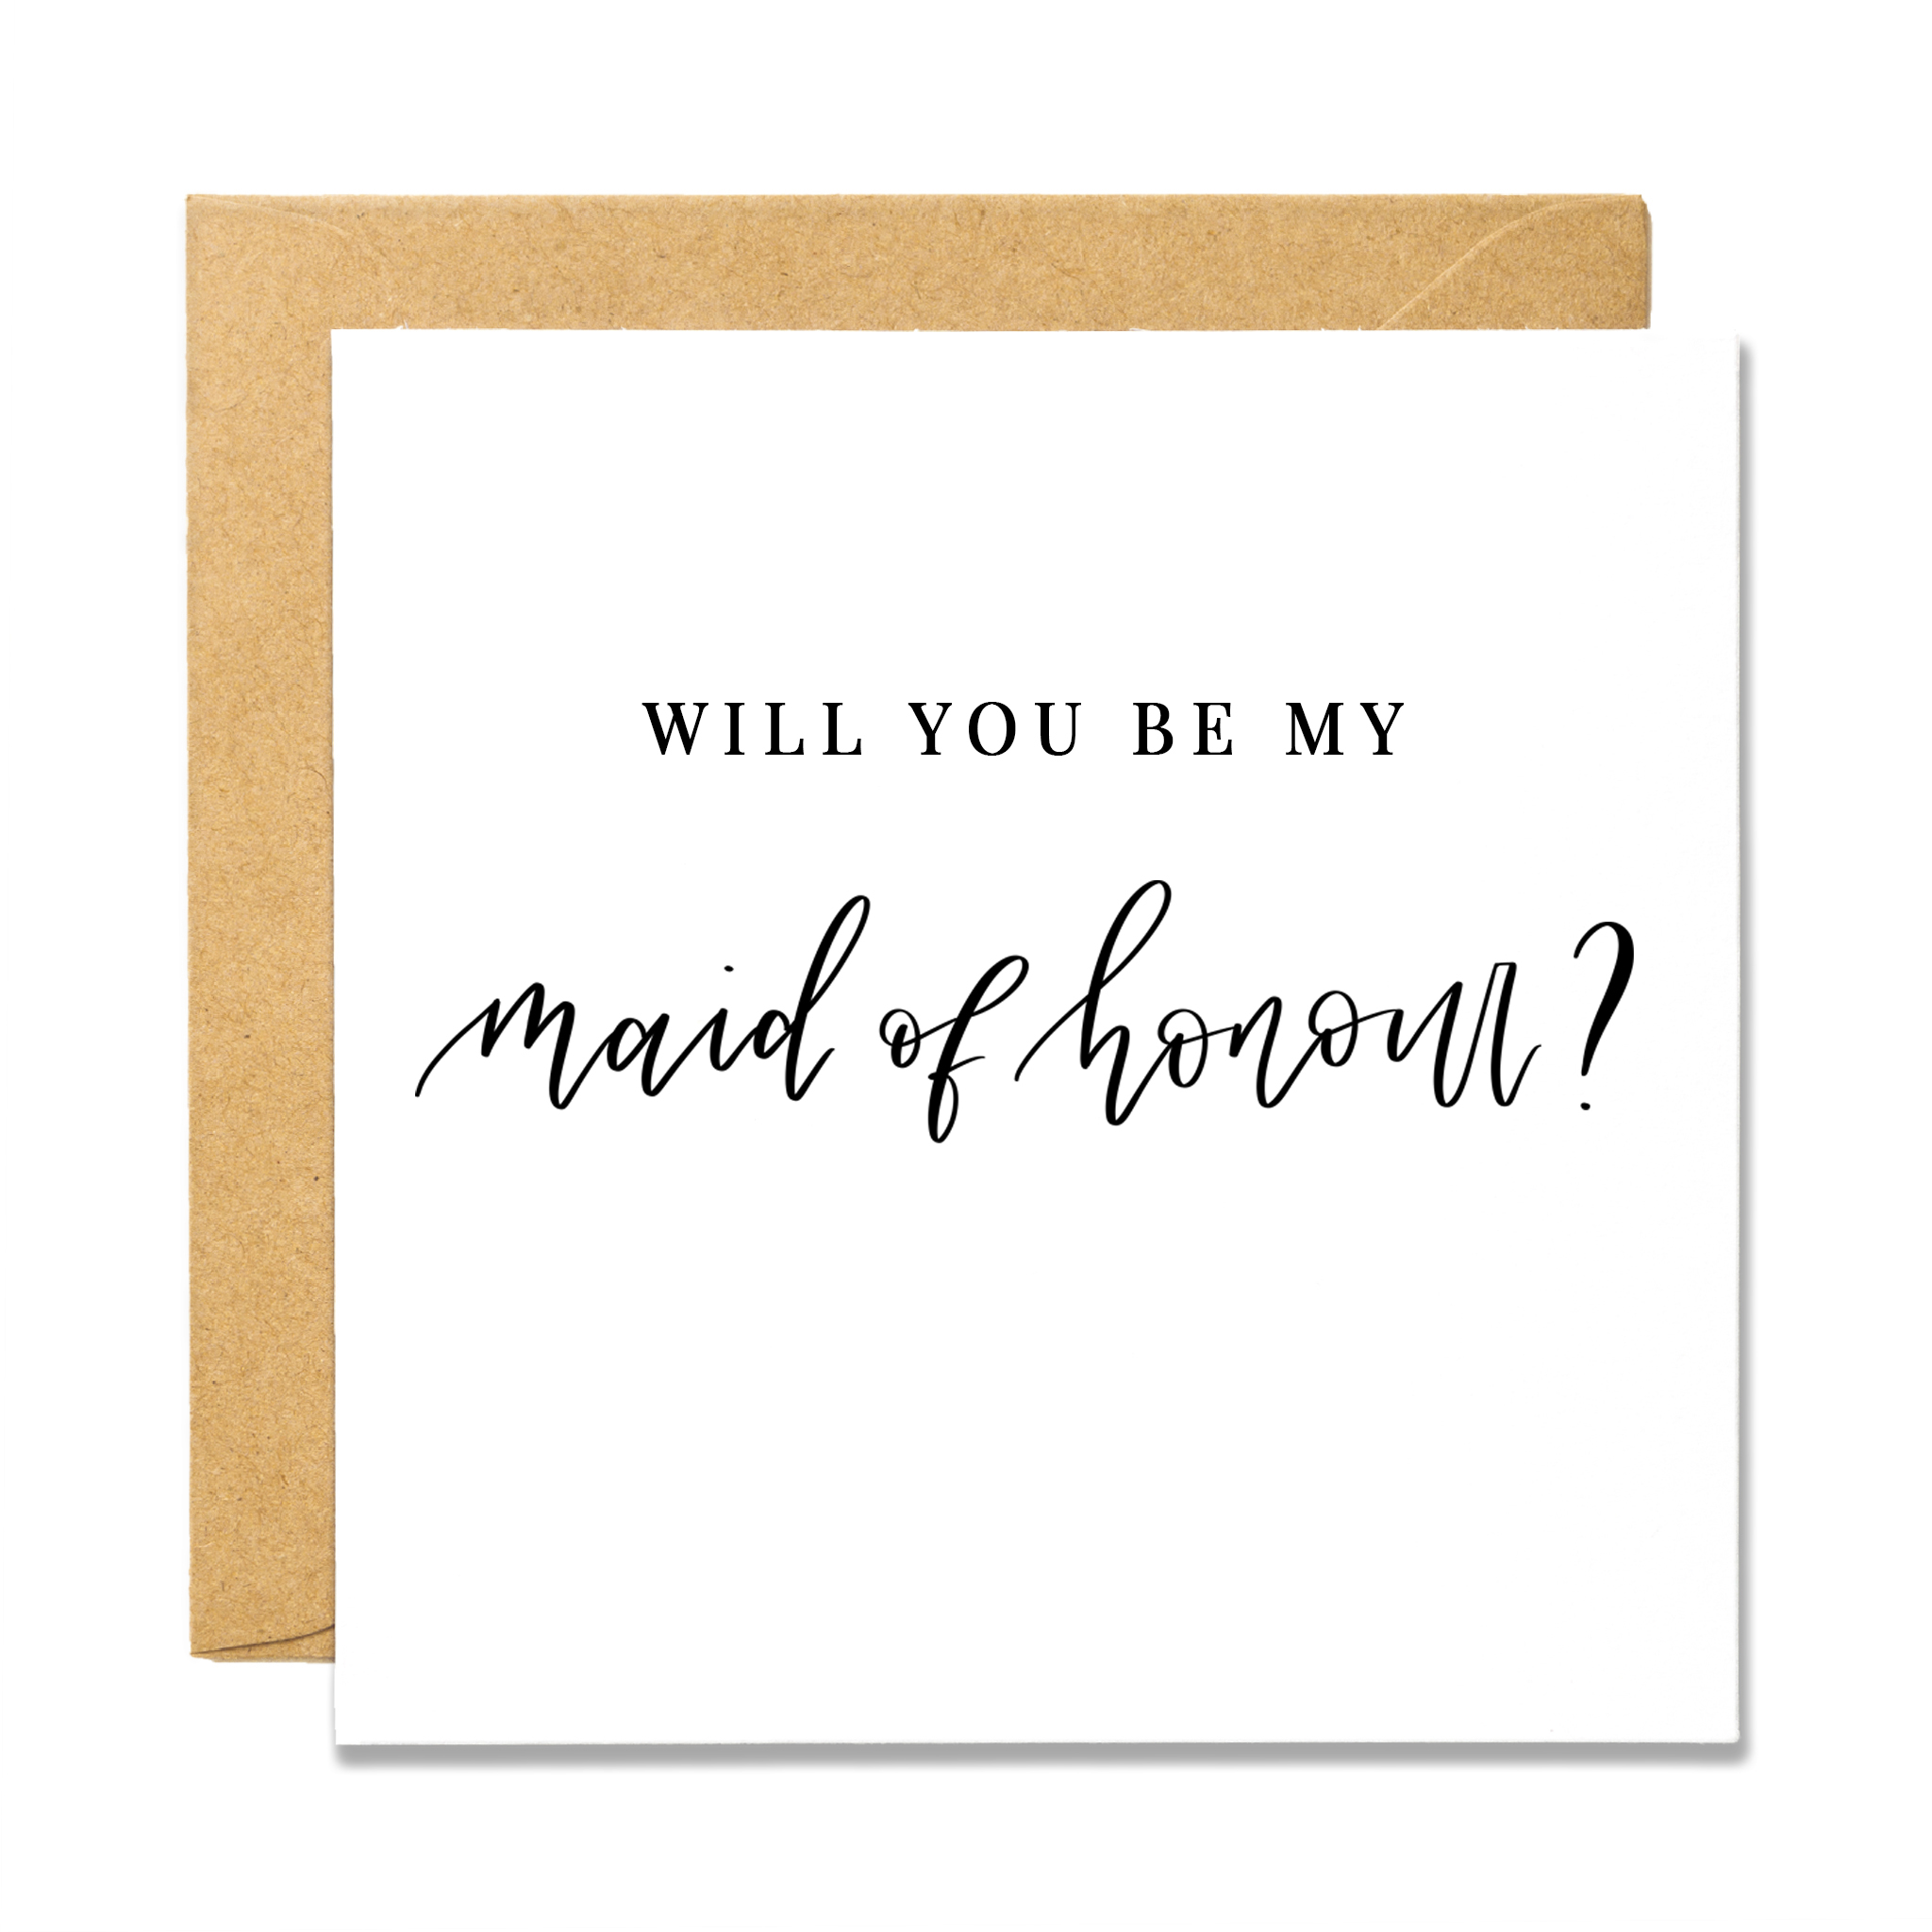 Will You Be My - Maid of Honour